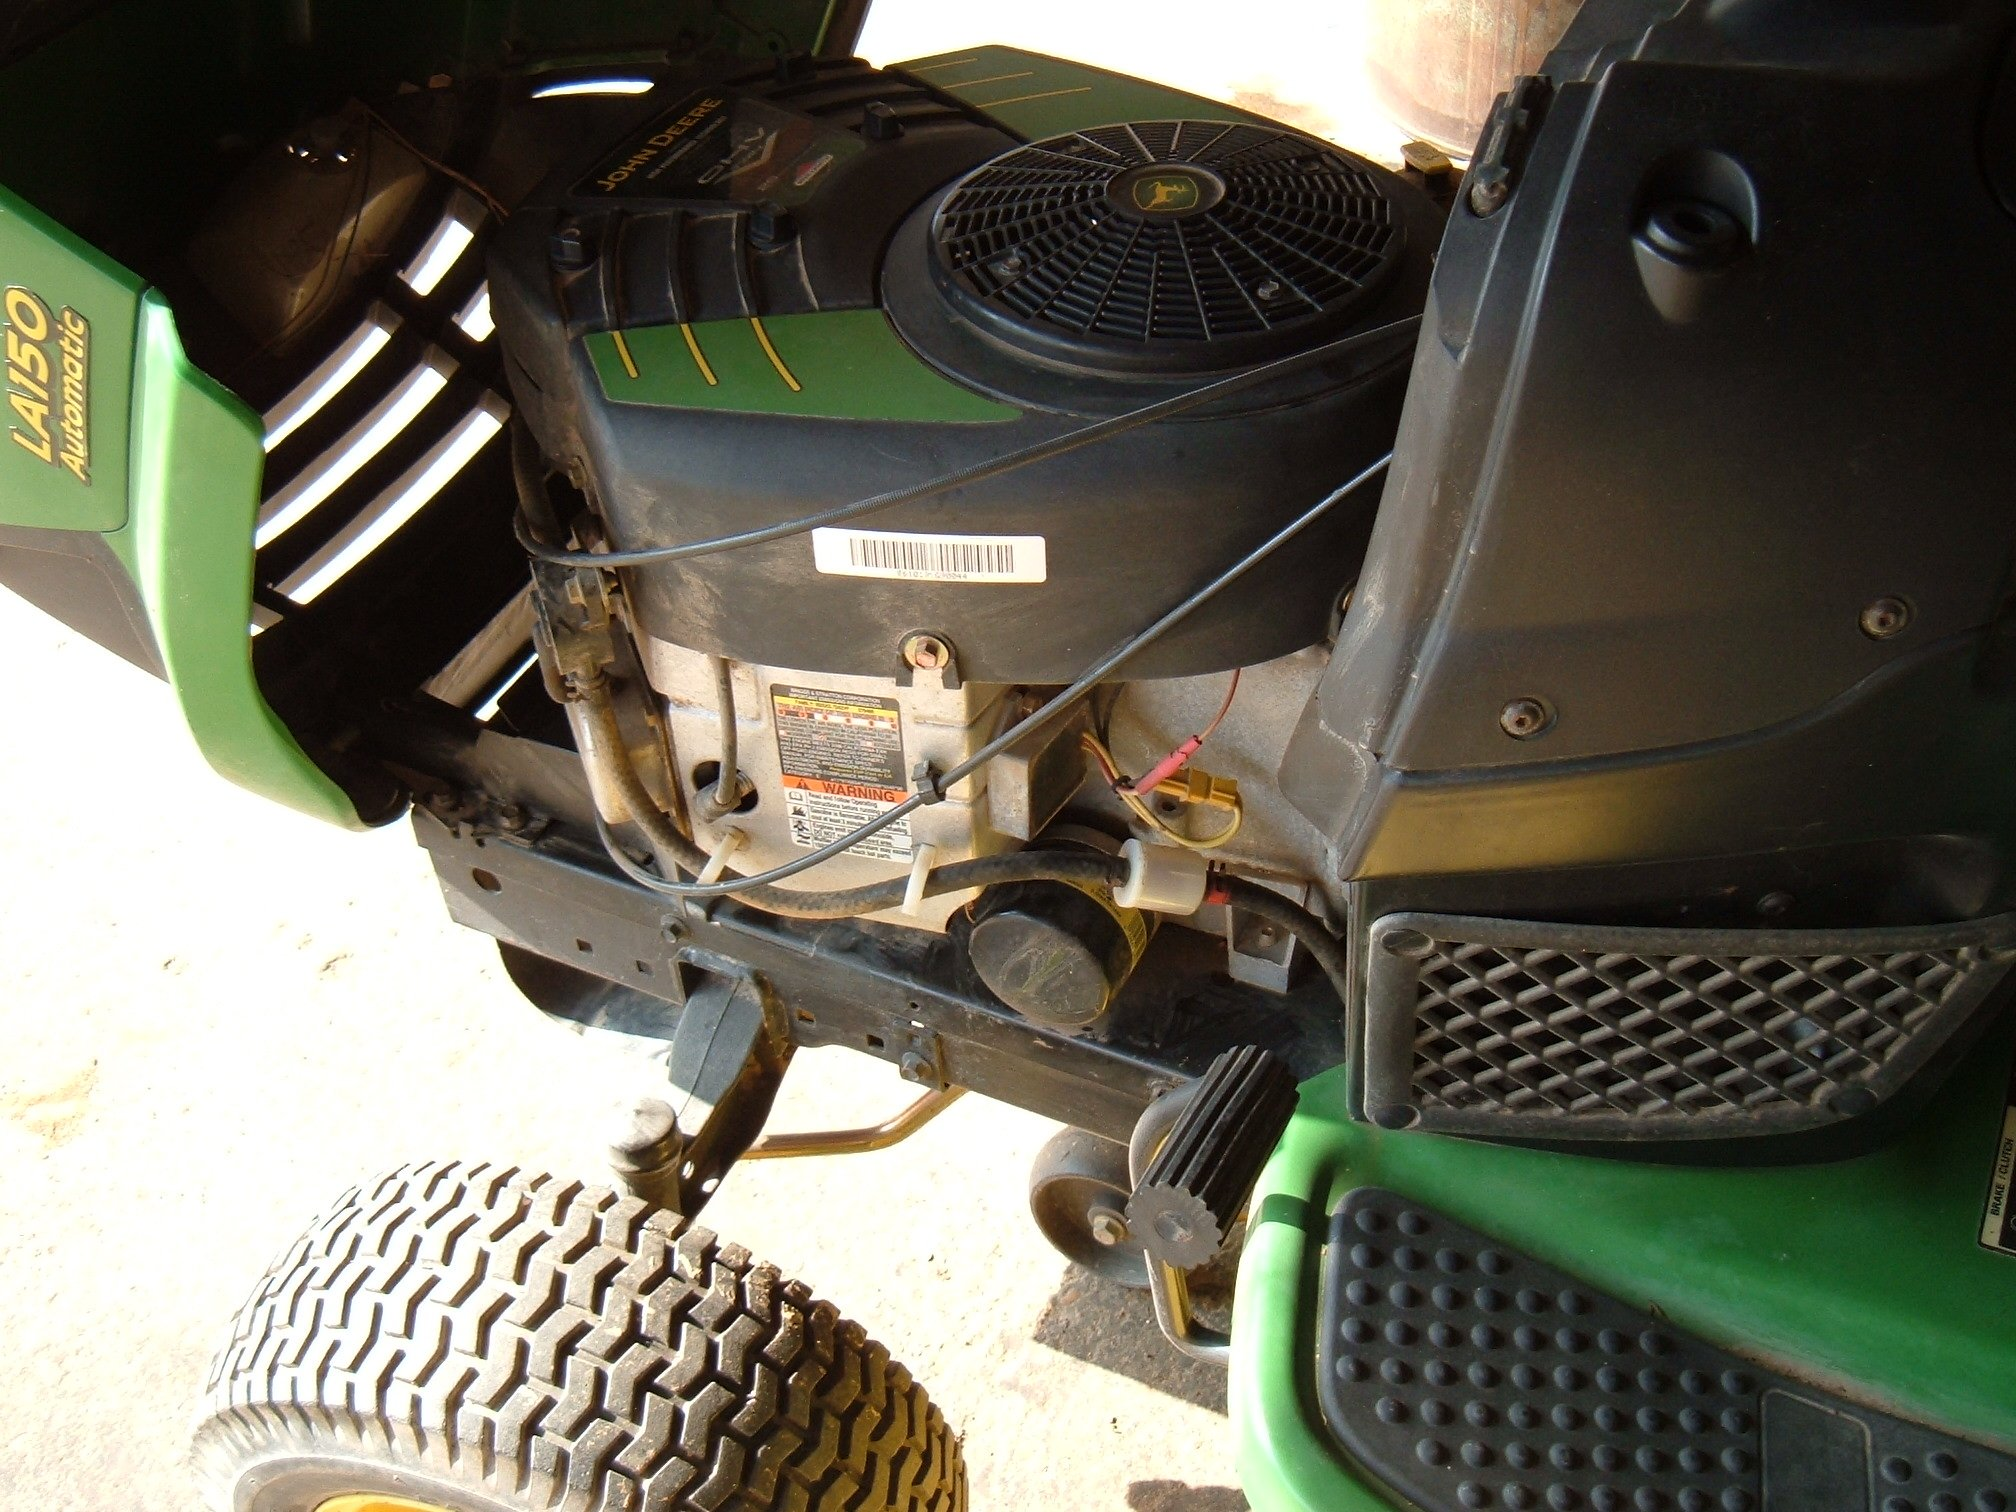 I Have A Craftsman Fs5500 Riding Mower With A Briggs